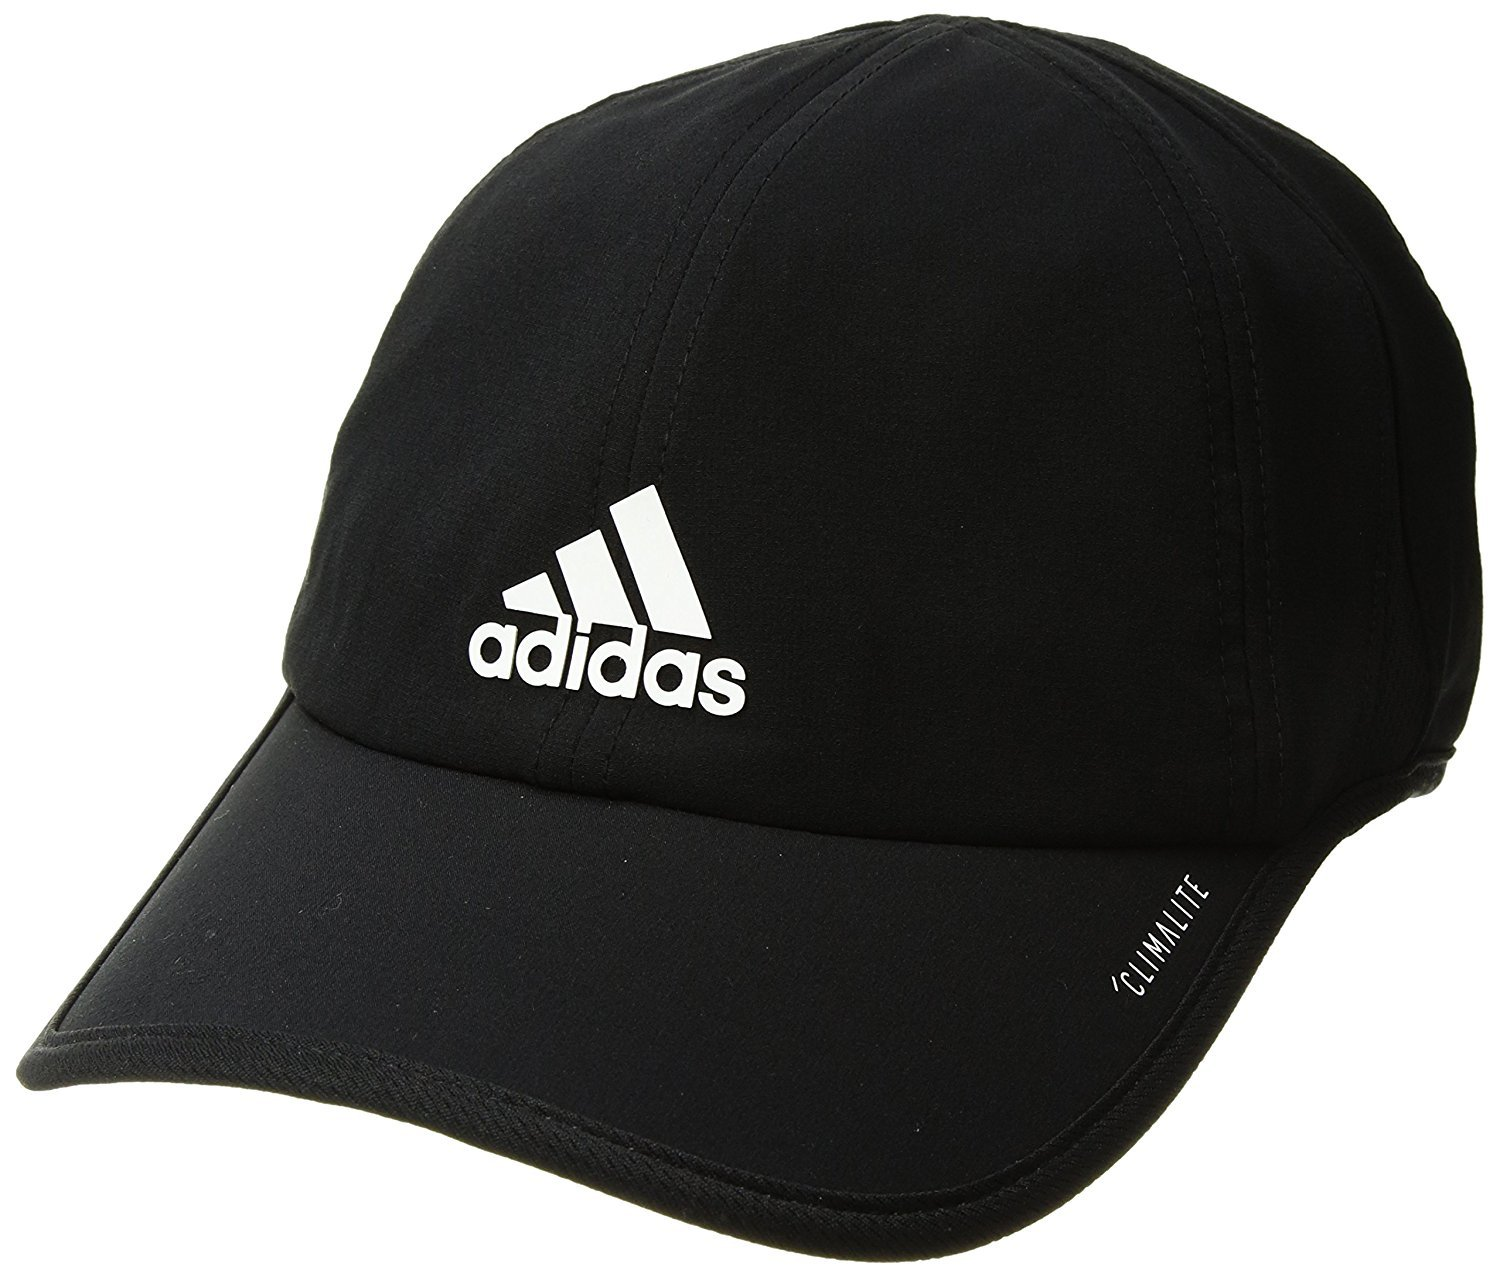 adidas Men's Superlite Relaxed Performance Cap, Black/White, One Size